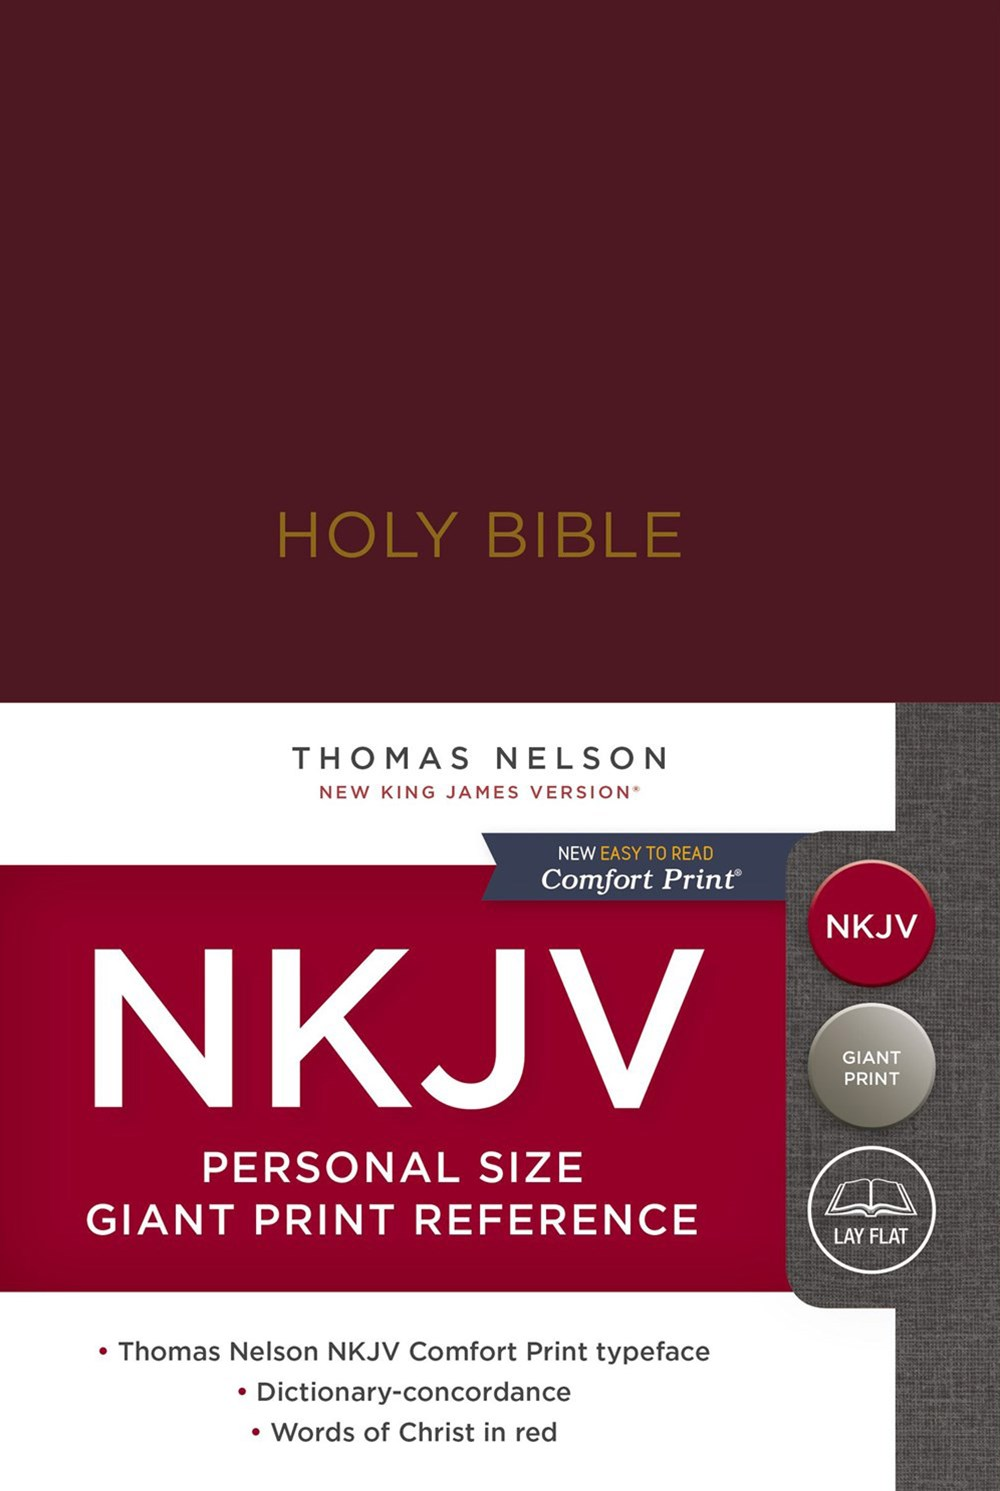 NKJV Personal Size Reference Bible Red Letter Edition [Giant Print, Burgundy]